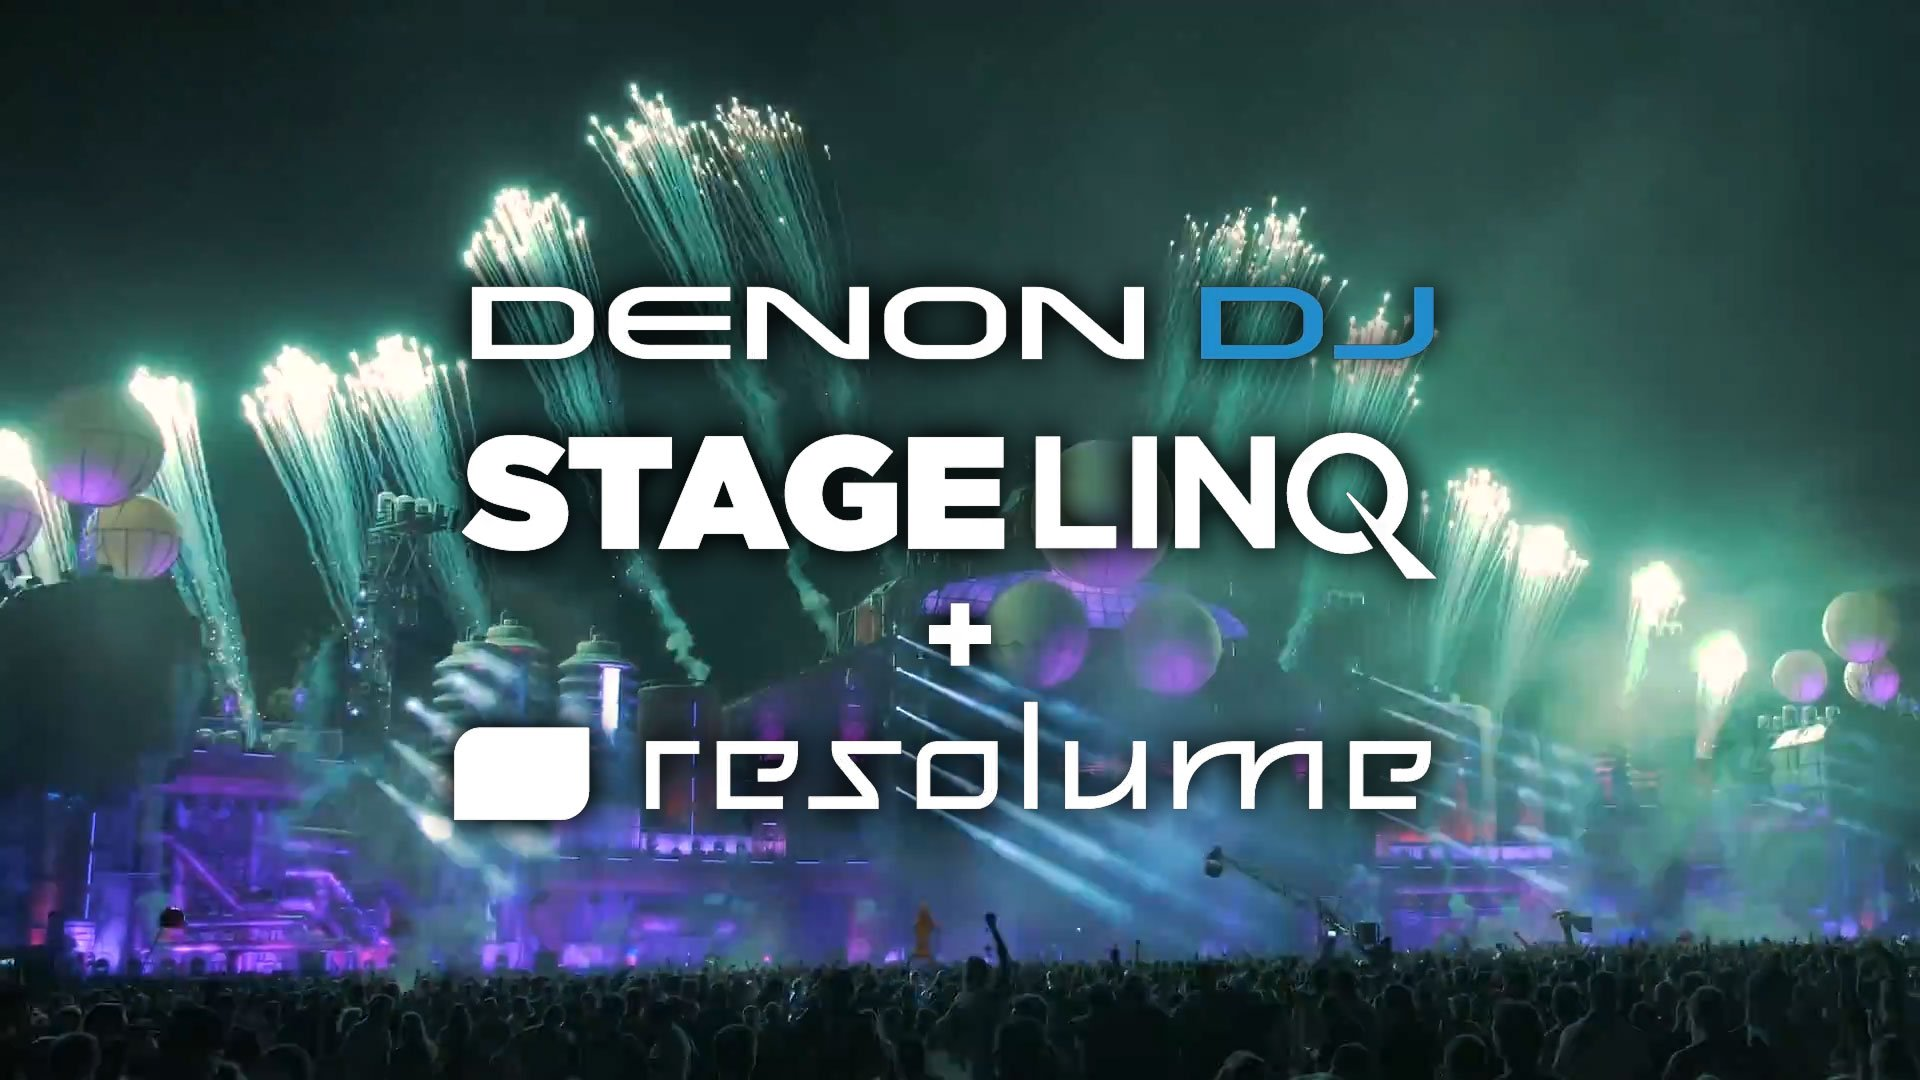 StageLinq, SoundSwitch, and Resolume — Denon DJ's visual